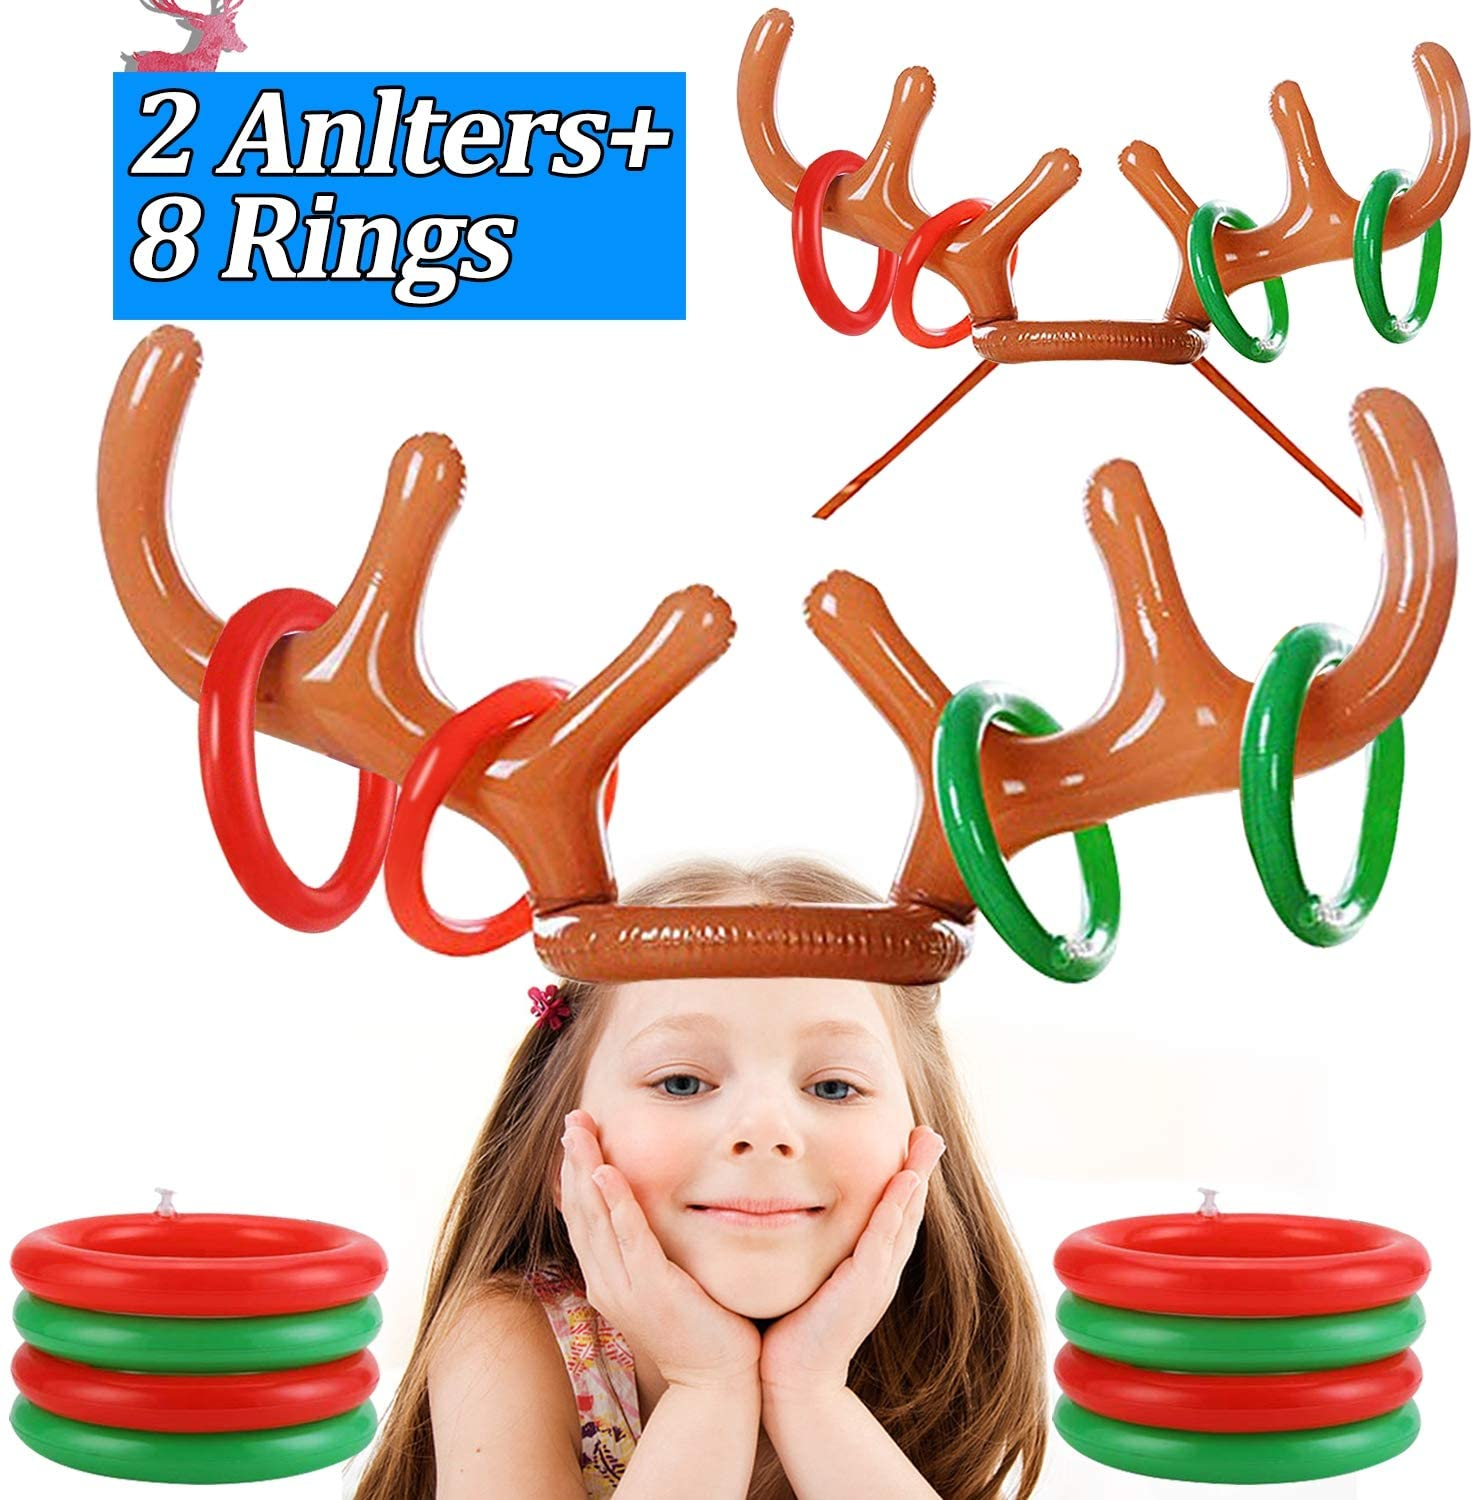 2 Pack Inflatable Reindeer Antlers Ring Toss Game, Inflatable Reindeer Antler Hat for Kids Adults Indoor Outdoor Carnival Game Xmas Family Party Antler Toss Games (2 Antlers 8 Rings)